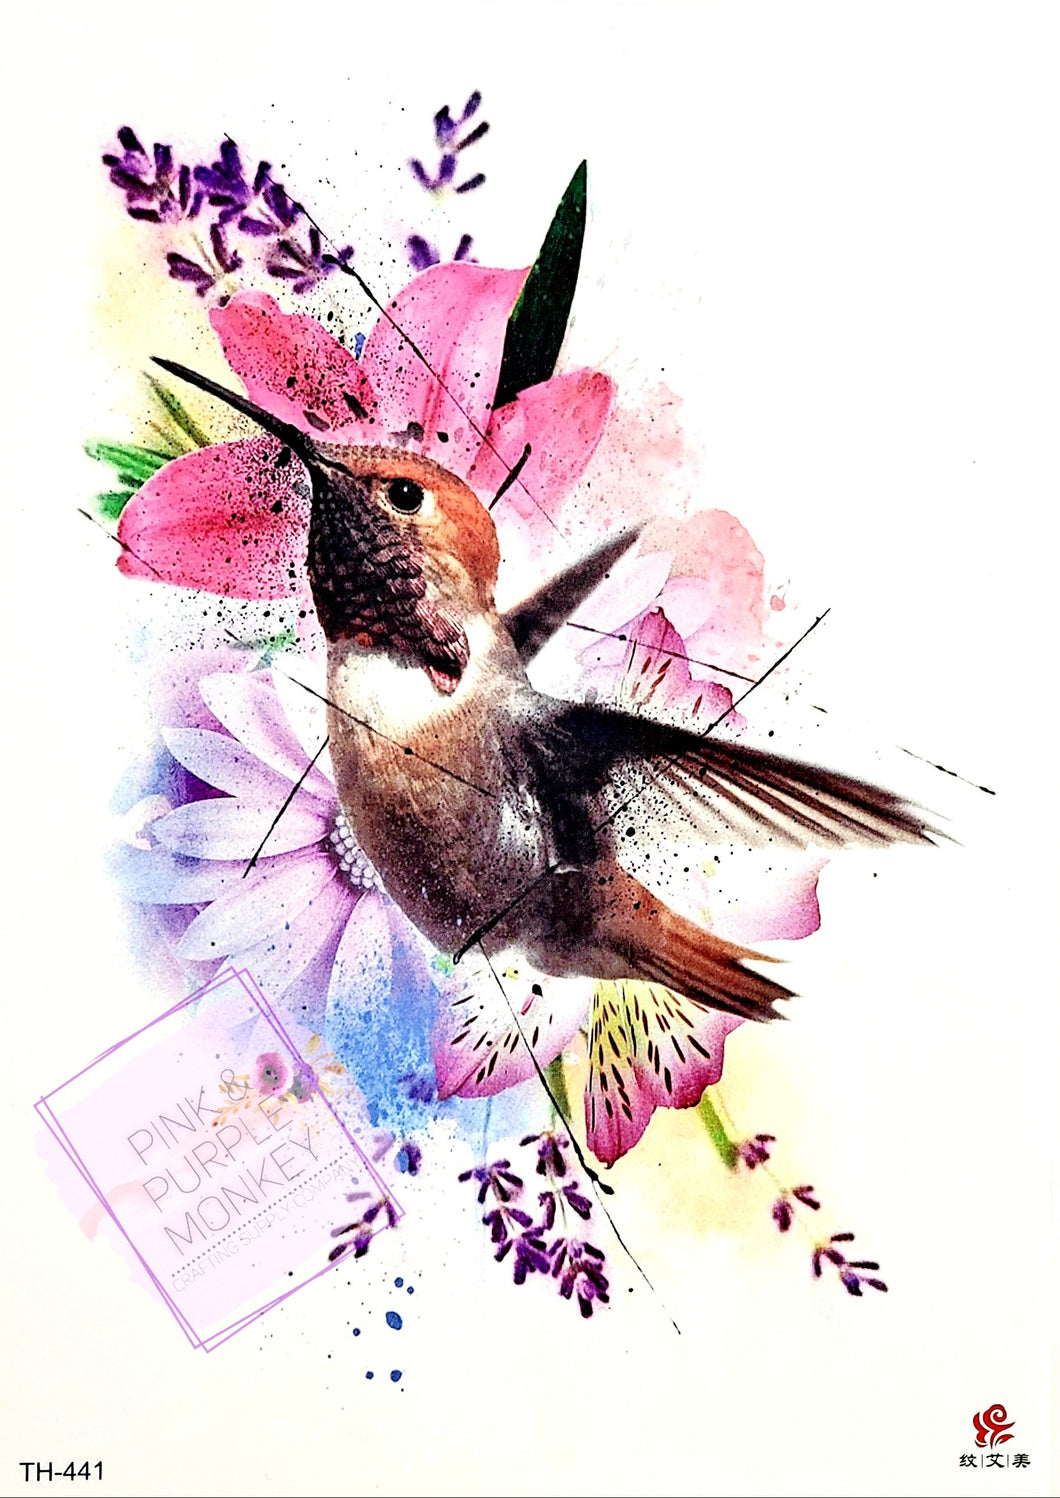 Colorful Floral Hummingbird Tattoo - 8 x 5